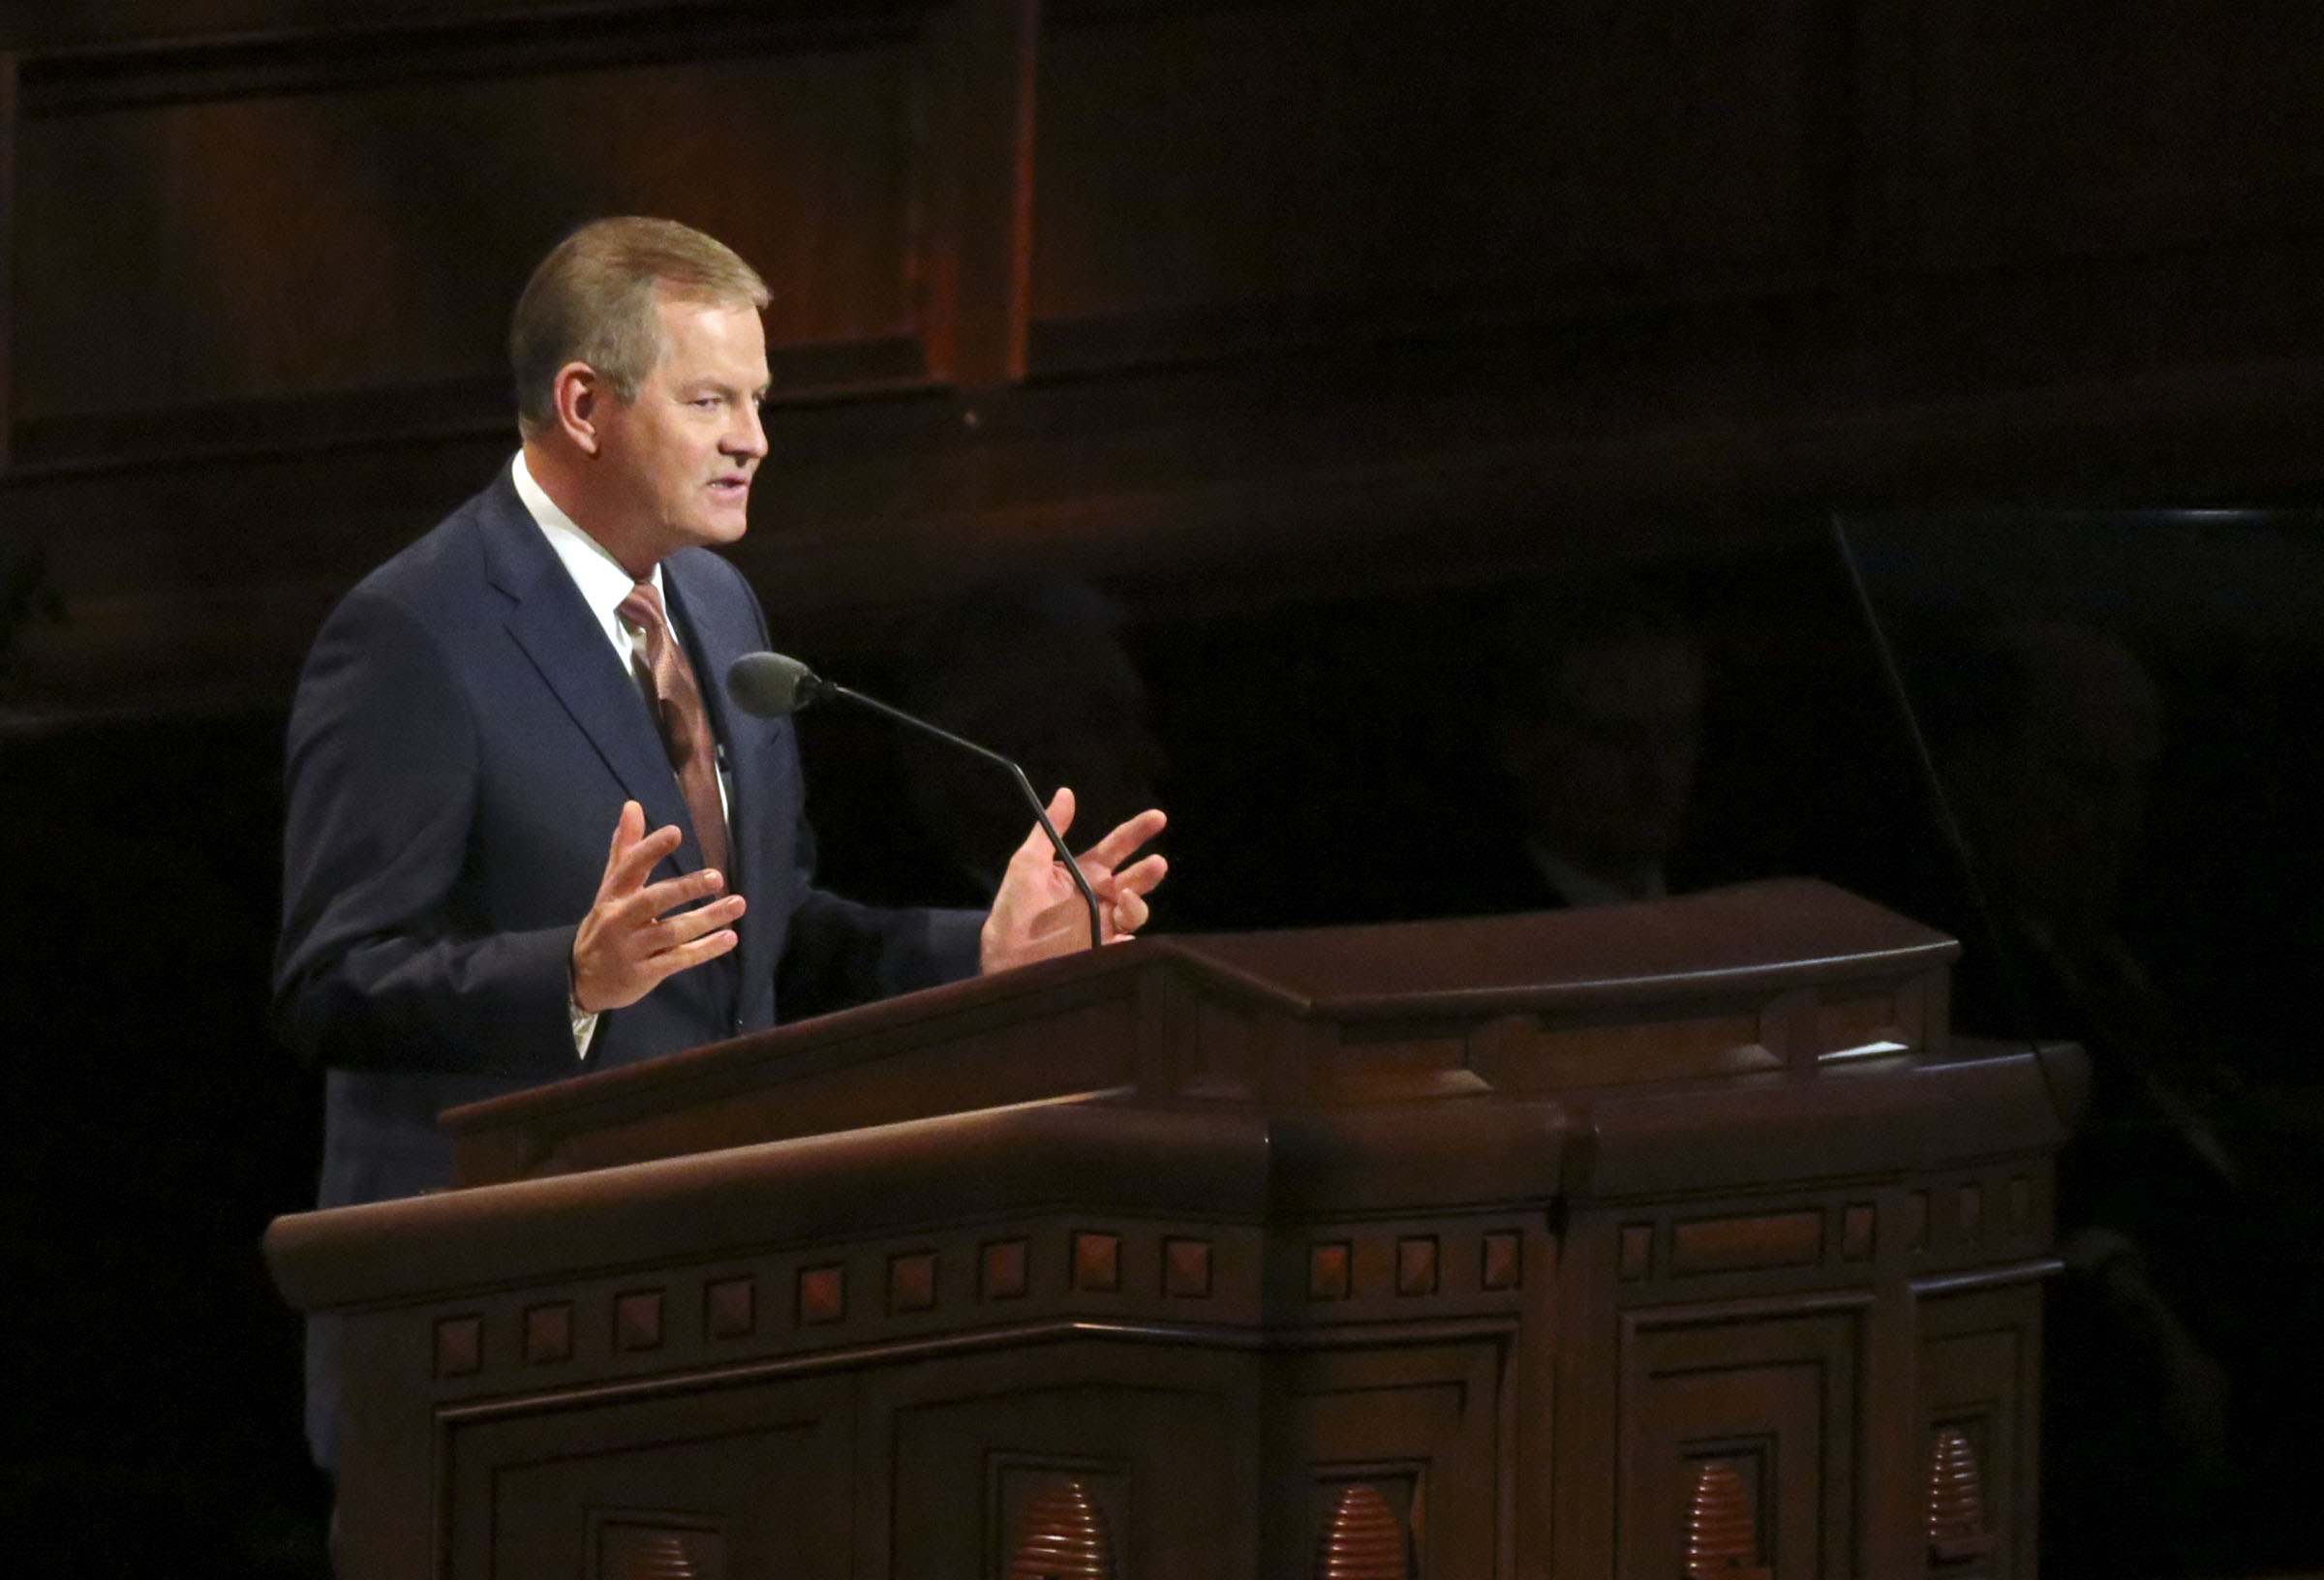 Elder Gary E. Stevenson of the Quorum of the Twelve Apostles speaks during the Sunday afternoon session of the 188th Semiannual General Conference of The Church of Jesus Christ of Latter-day Saints in the Conference Center in downtown Salt Lake City on Sunday, Oct. 7, 2018.